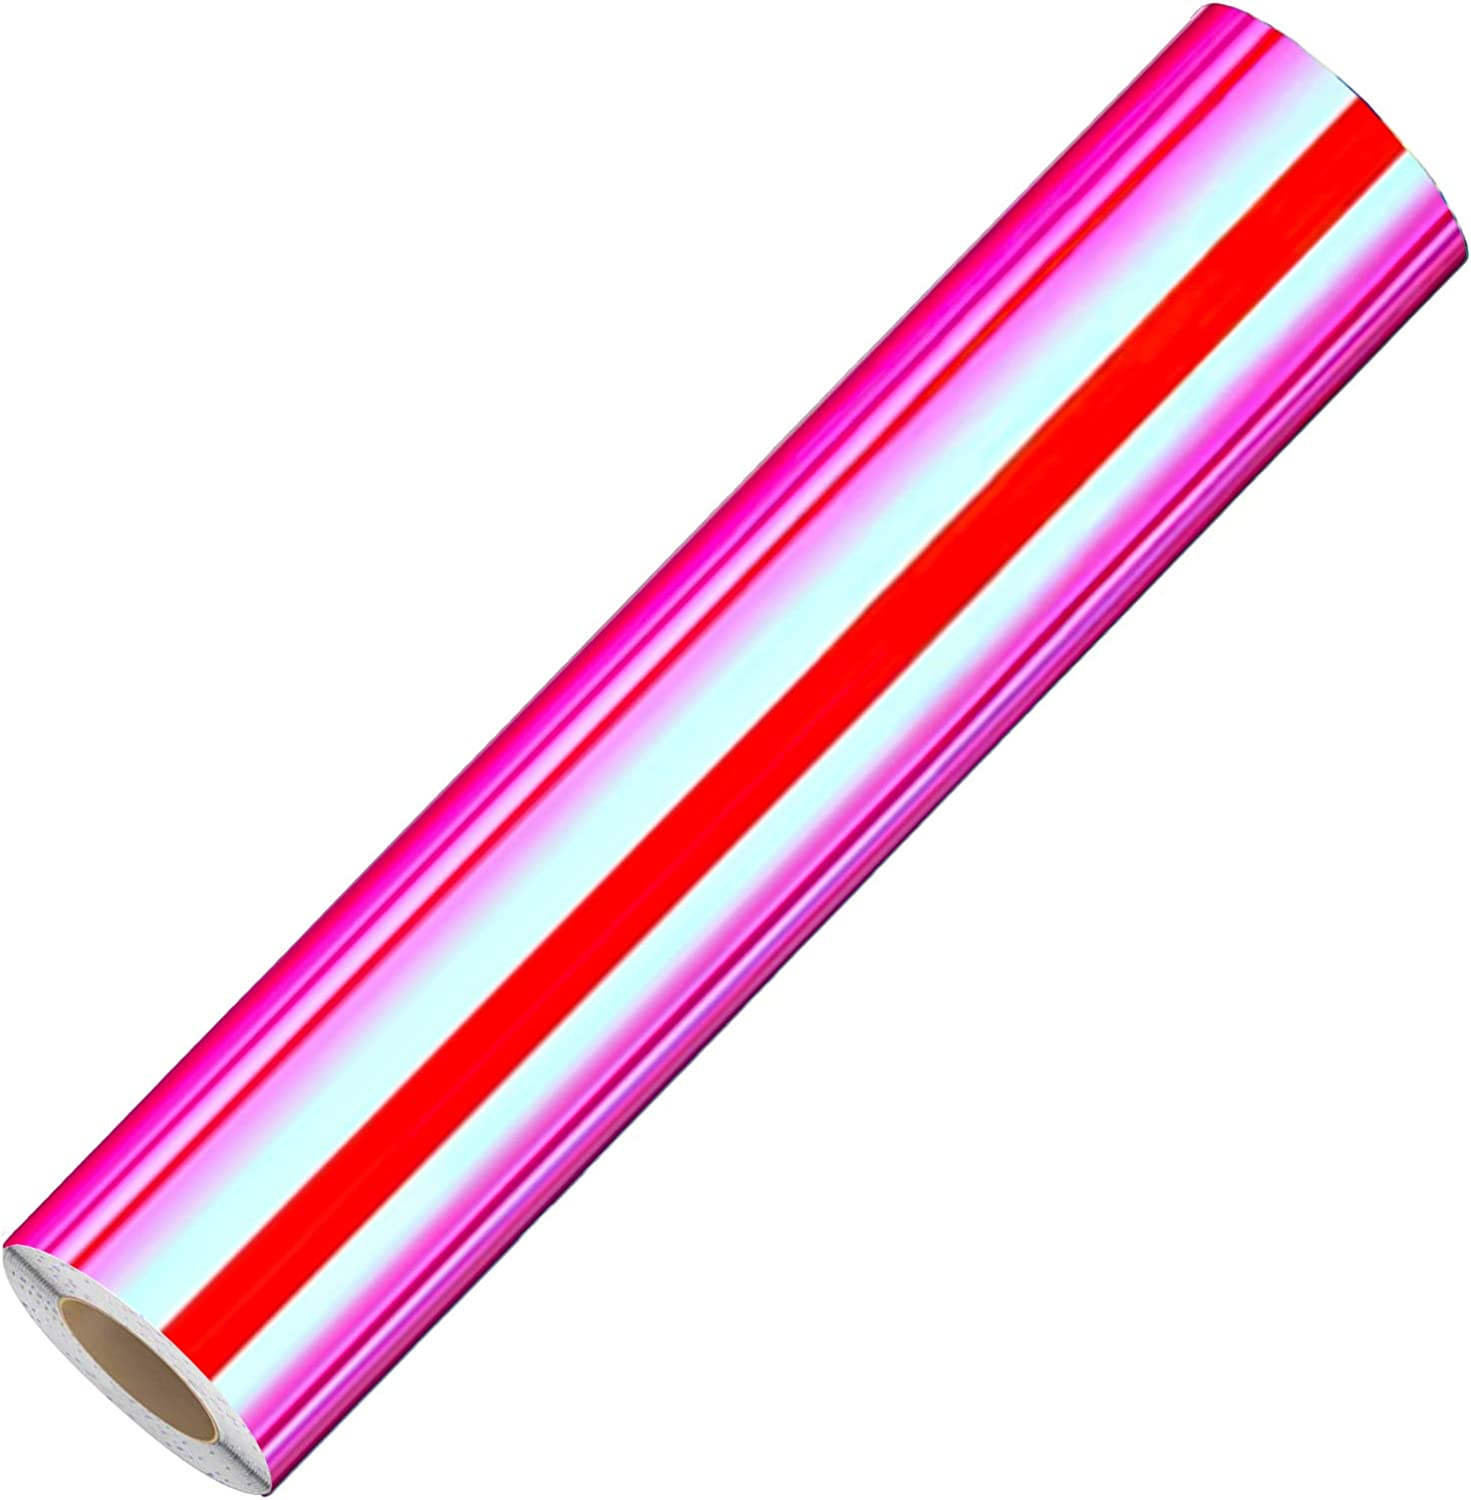 Lya Vinyl Permanent Holographic Opal Craft Vinyl Roll for Home Decor, Logo, Letters, Banners, Car Exteriors, Glass Mirrors, Scrapbooking, Sign Plotters